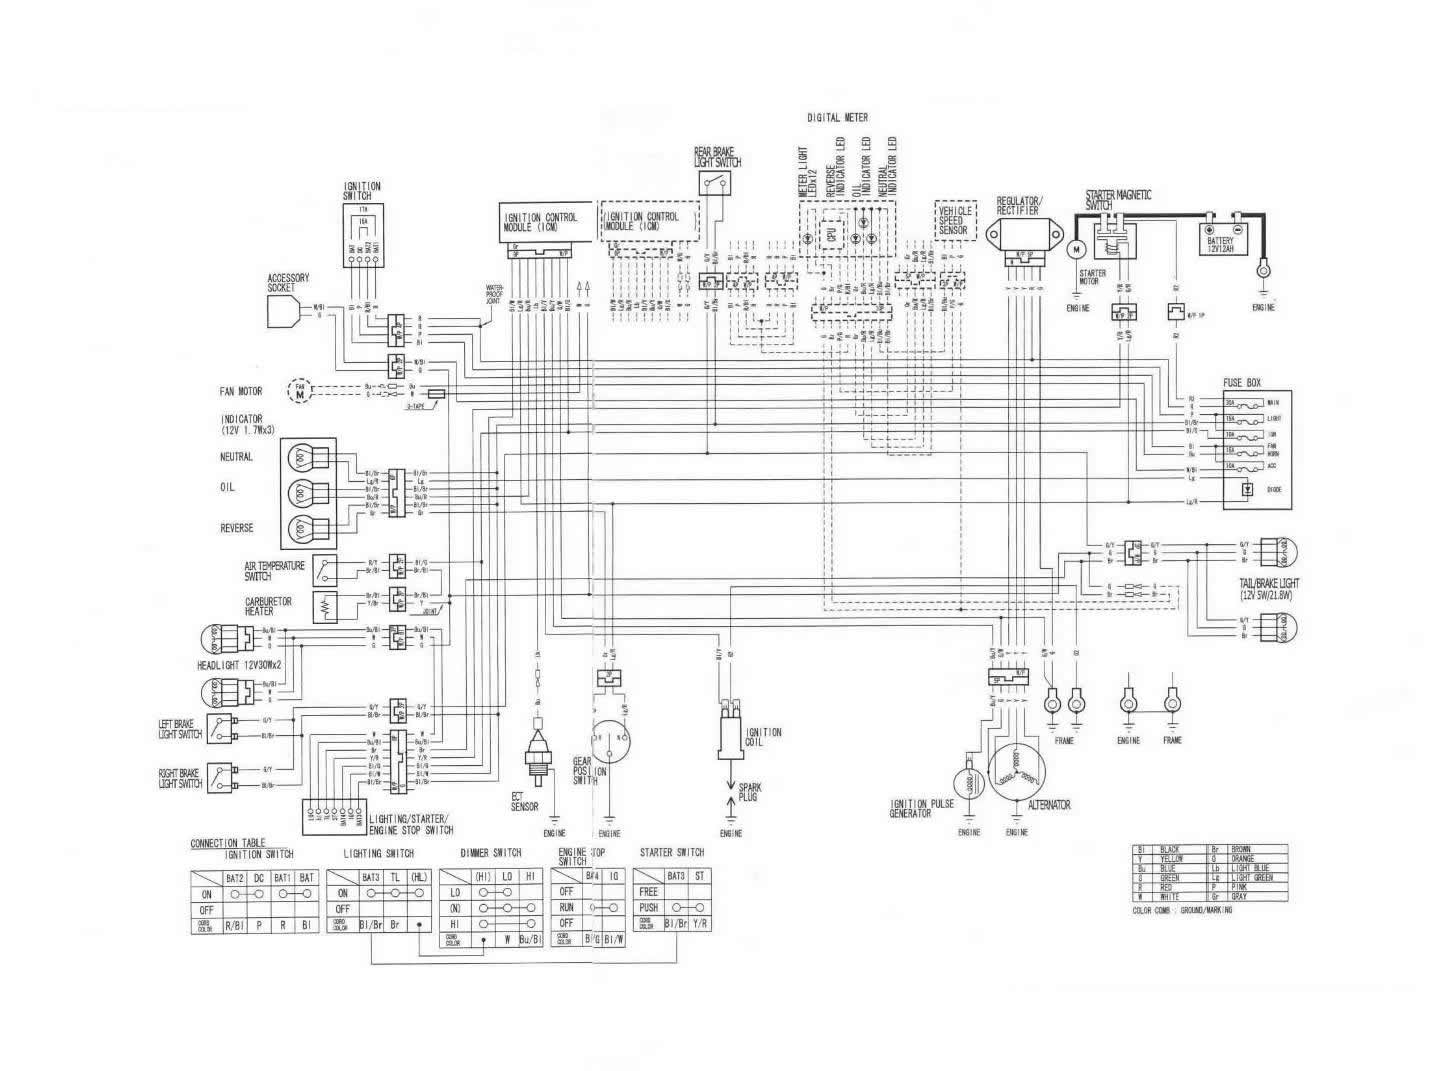 Rancher350_2004_wiring honda 420 atv wiring diagram honda wiring diagrams instruction 2007 honda rancher 420 wiring diagram at fashall.co